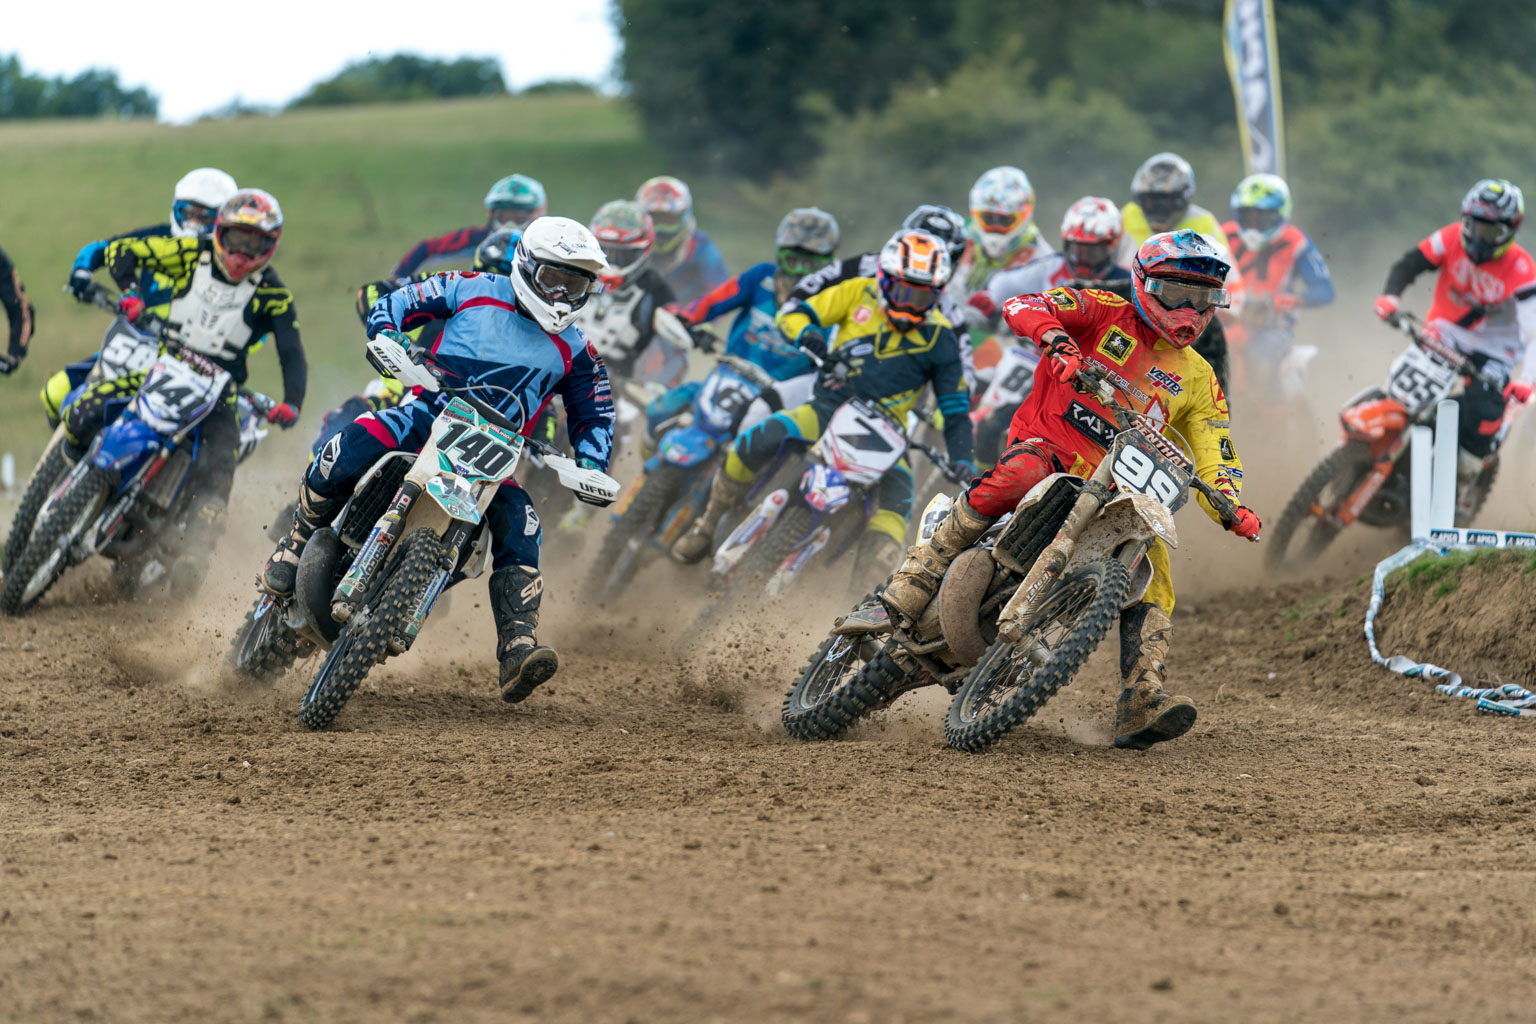 Cody Ling leads the Faster moto